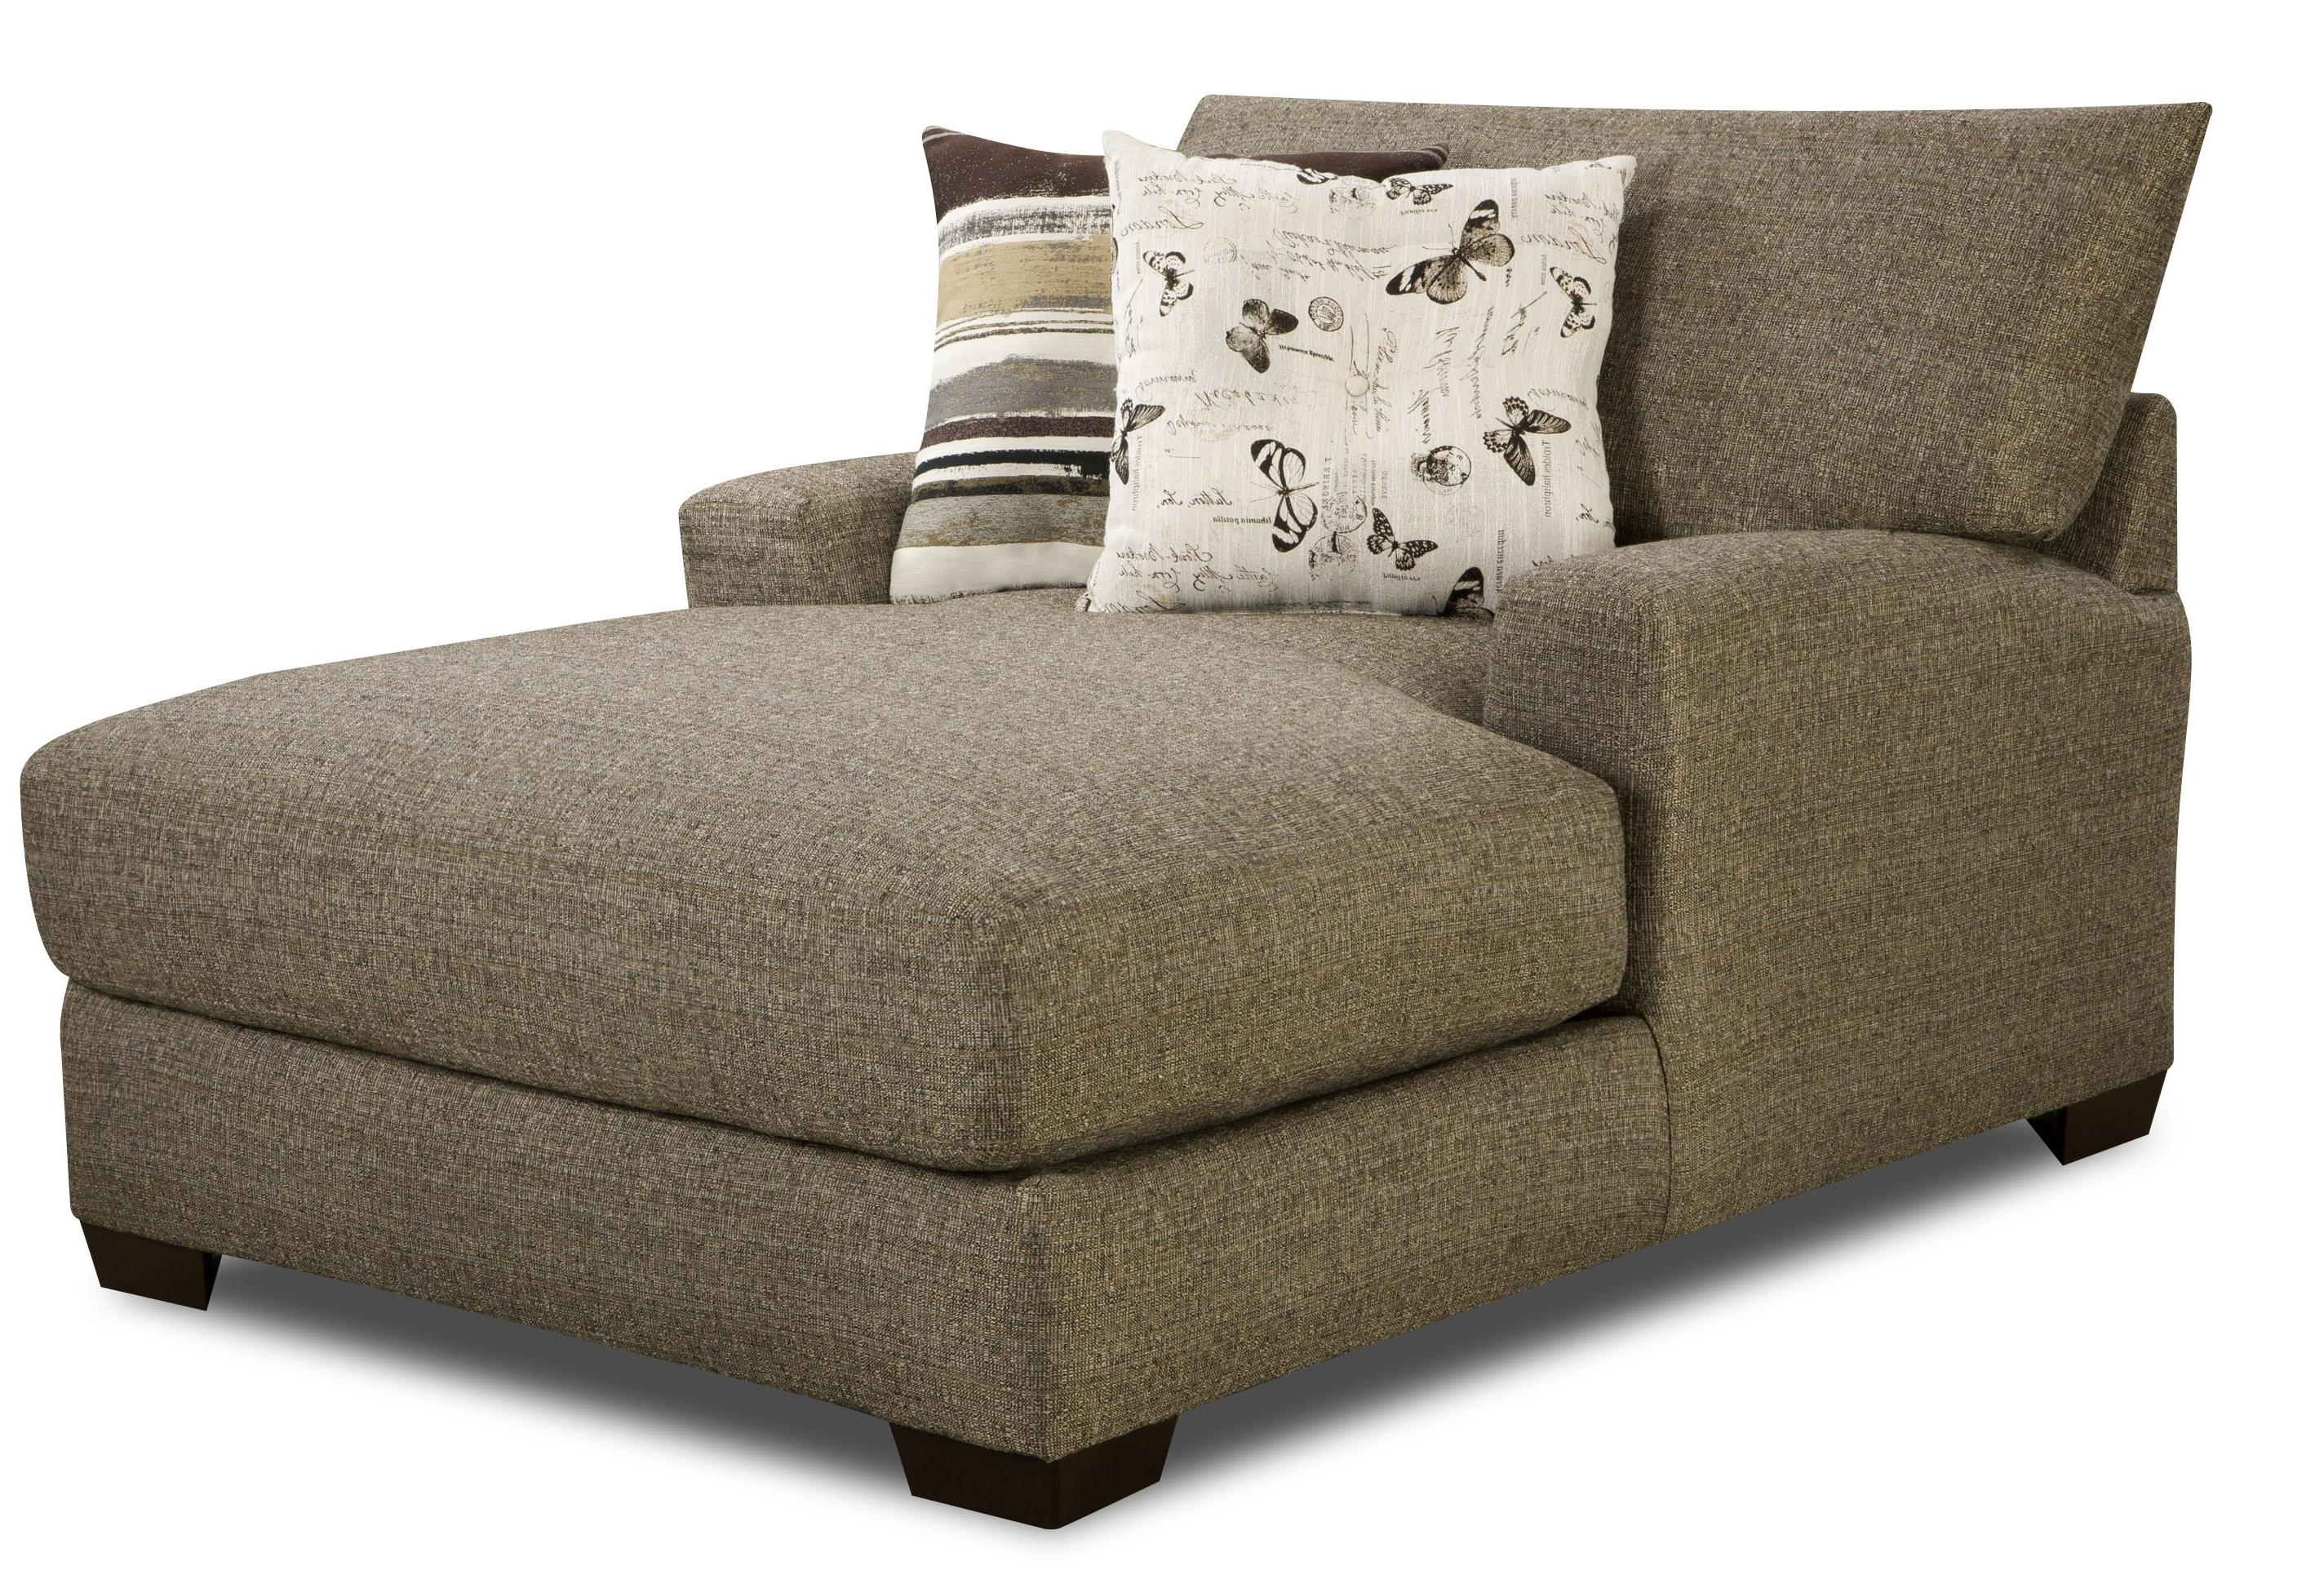 Fabric Chaise Lounges Intended For Well Known Fabric Chaise Lounge Chairs With Arms • Lounge Chairs Ideas (View 6 of 15)